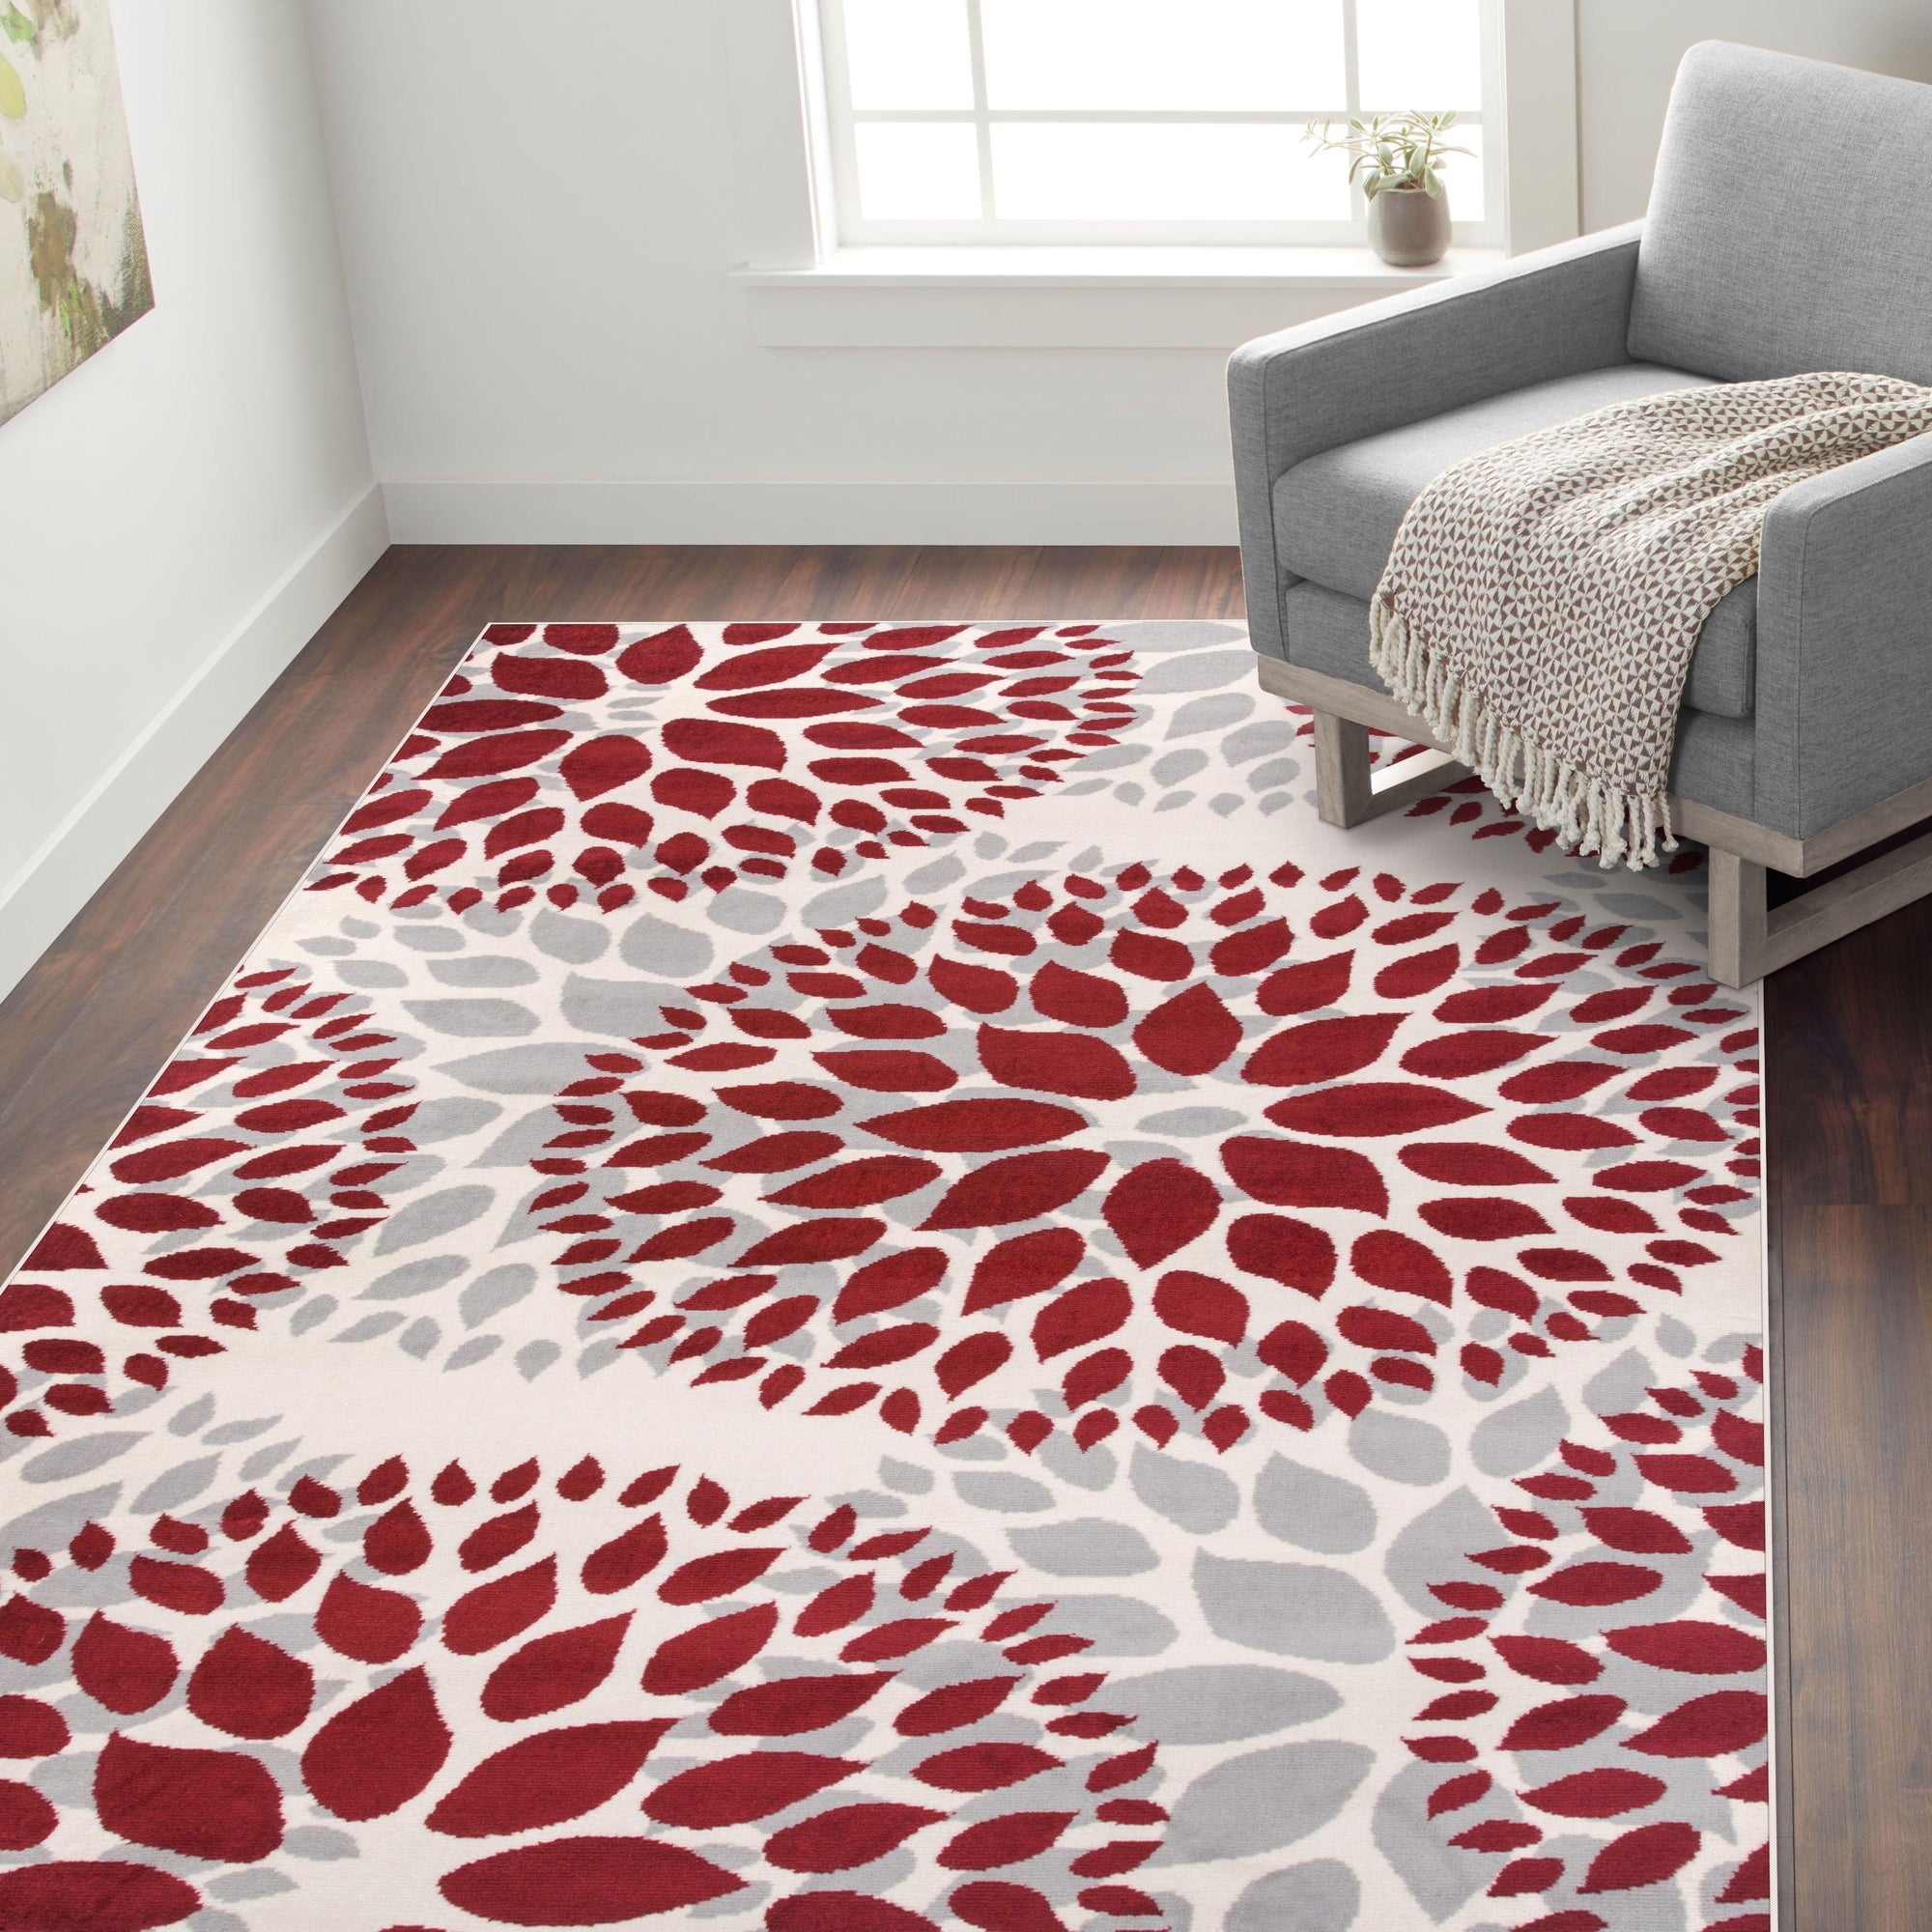 Newport 9099 Red Area Rug 2 X 72